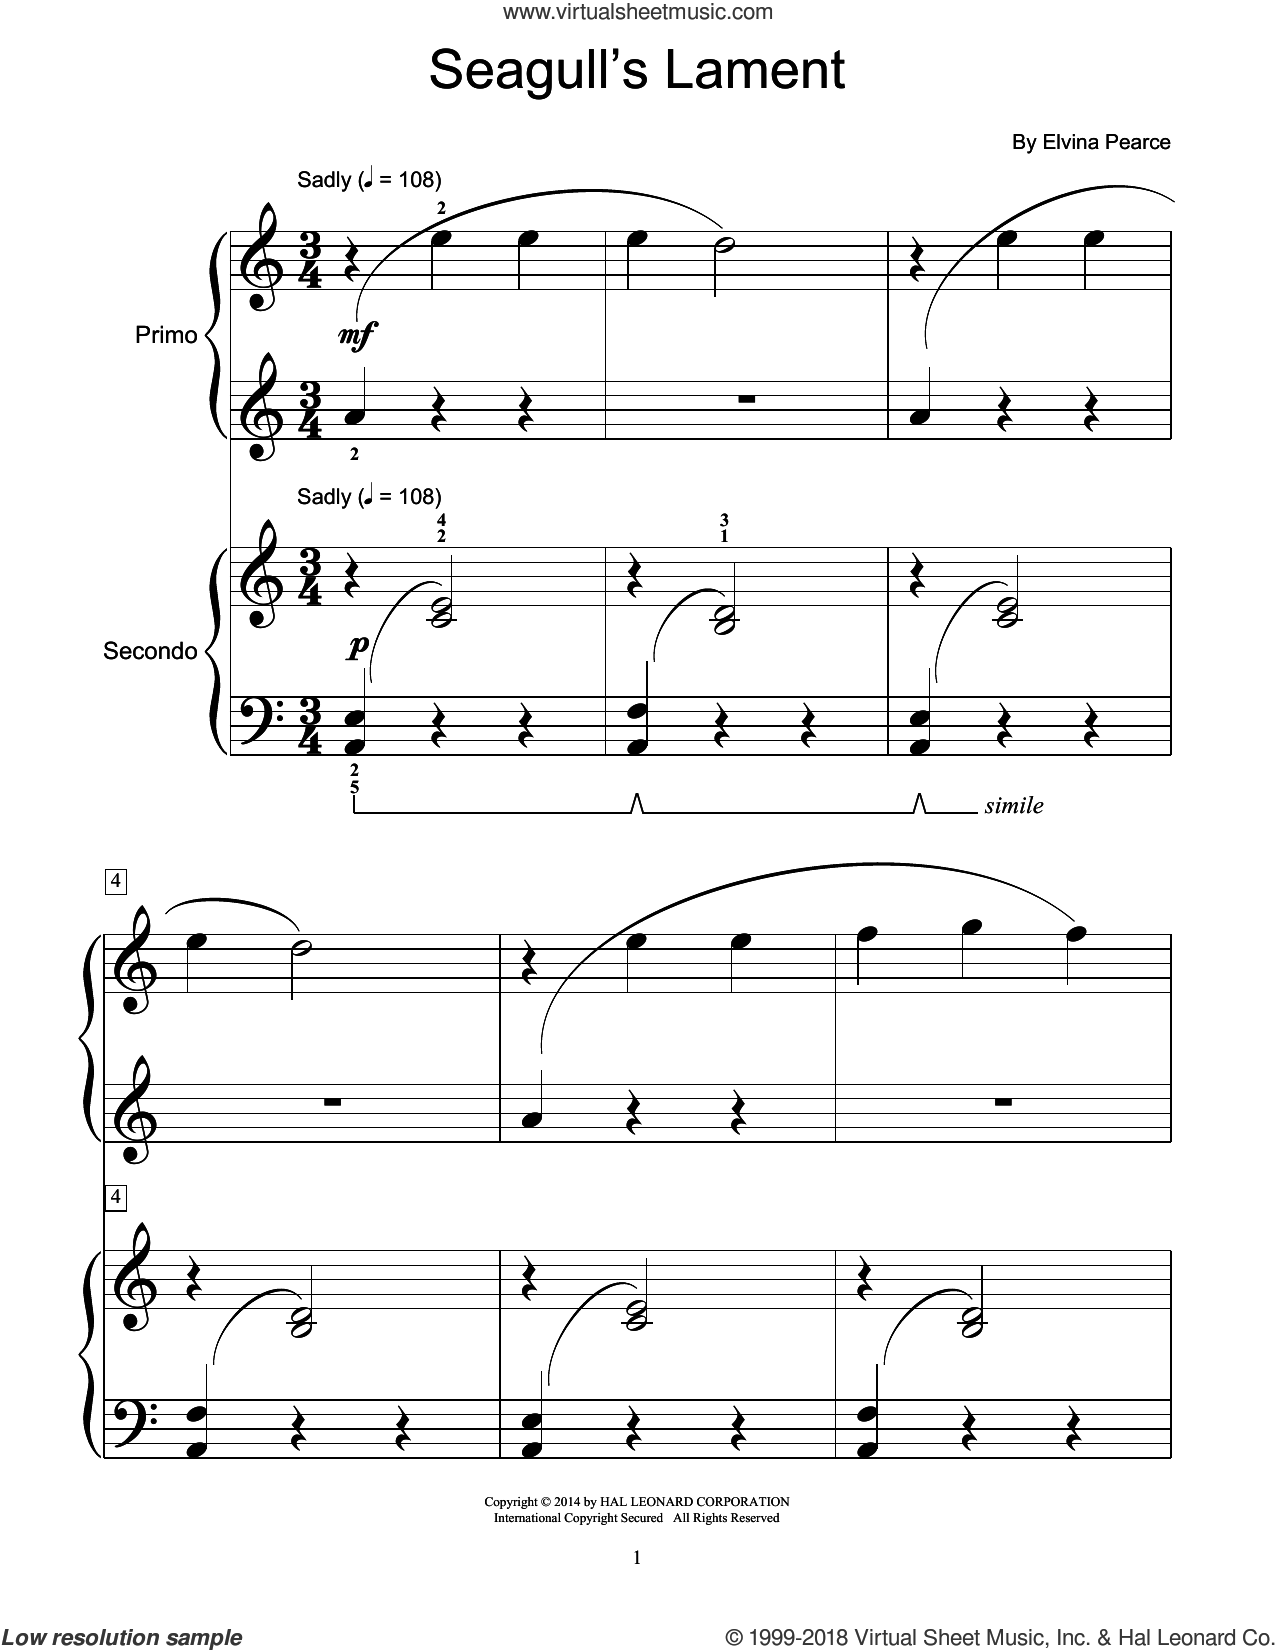 Seagull's Lament sheet music for piano four hands by Elvina Pearce, classical score, intermediate skill level